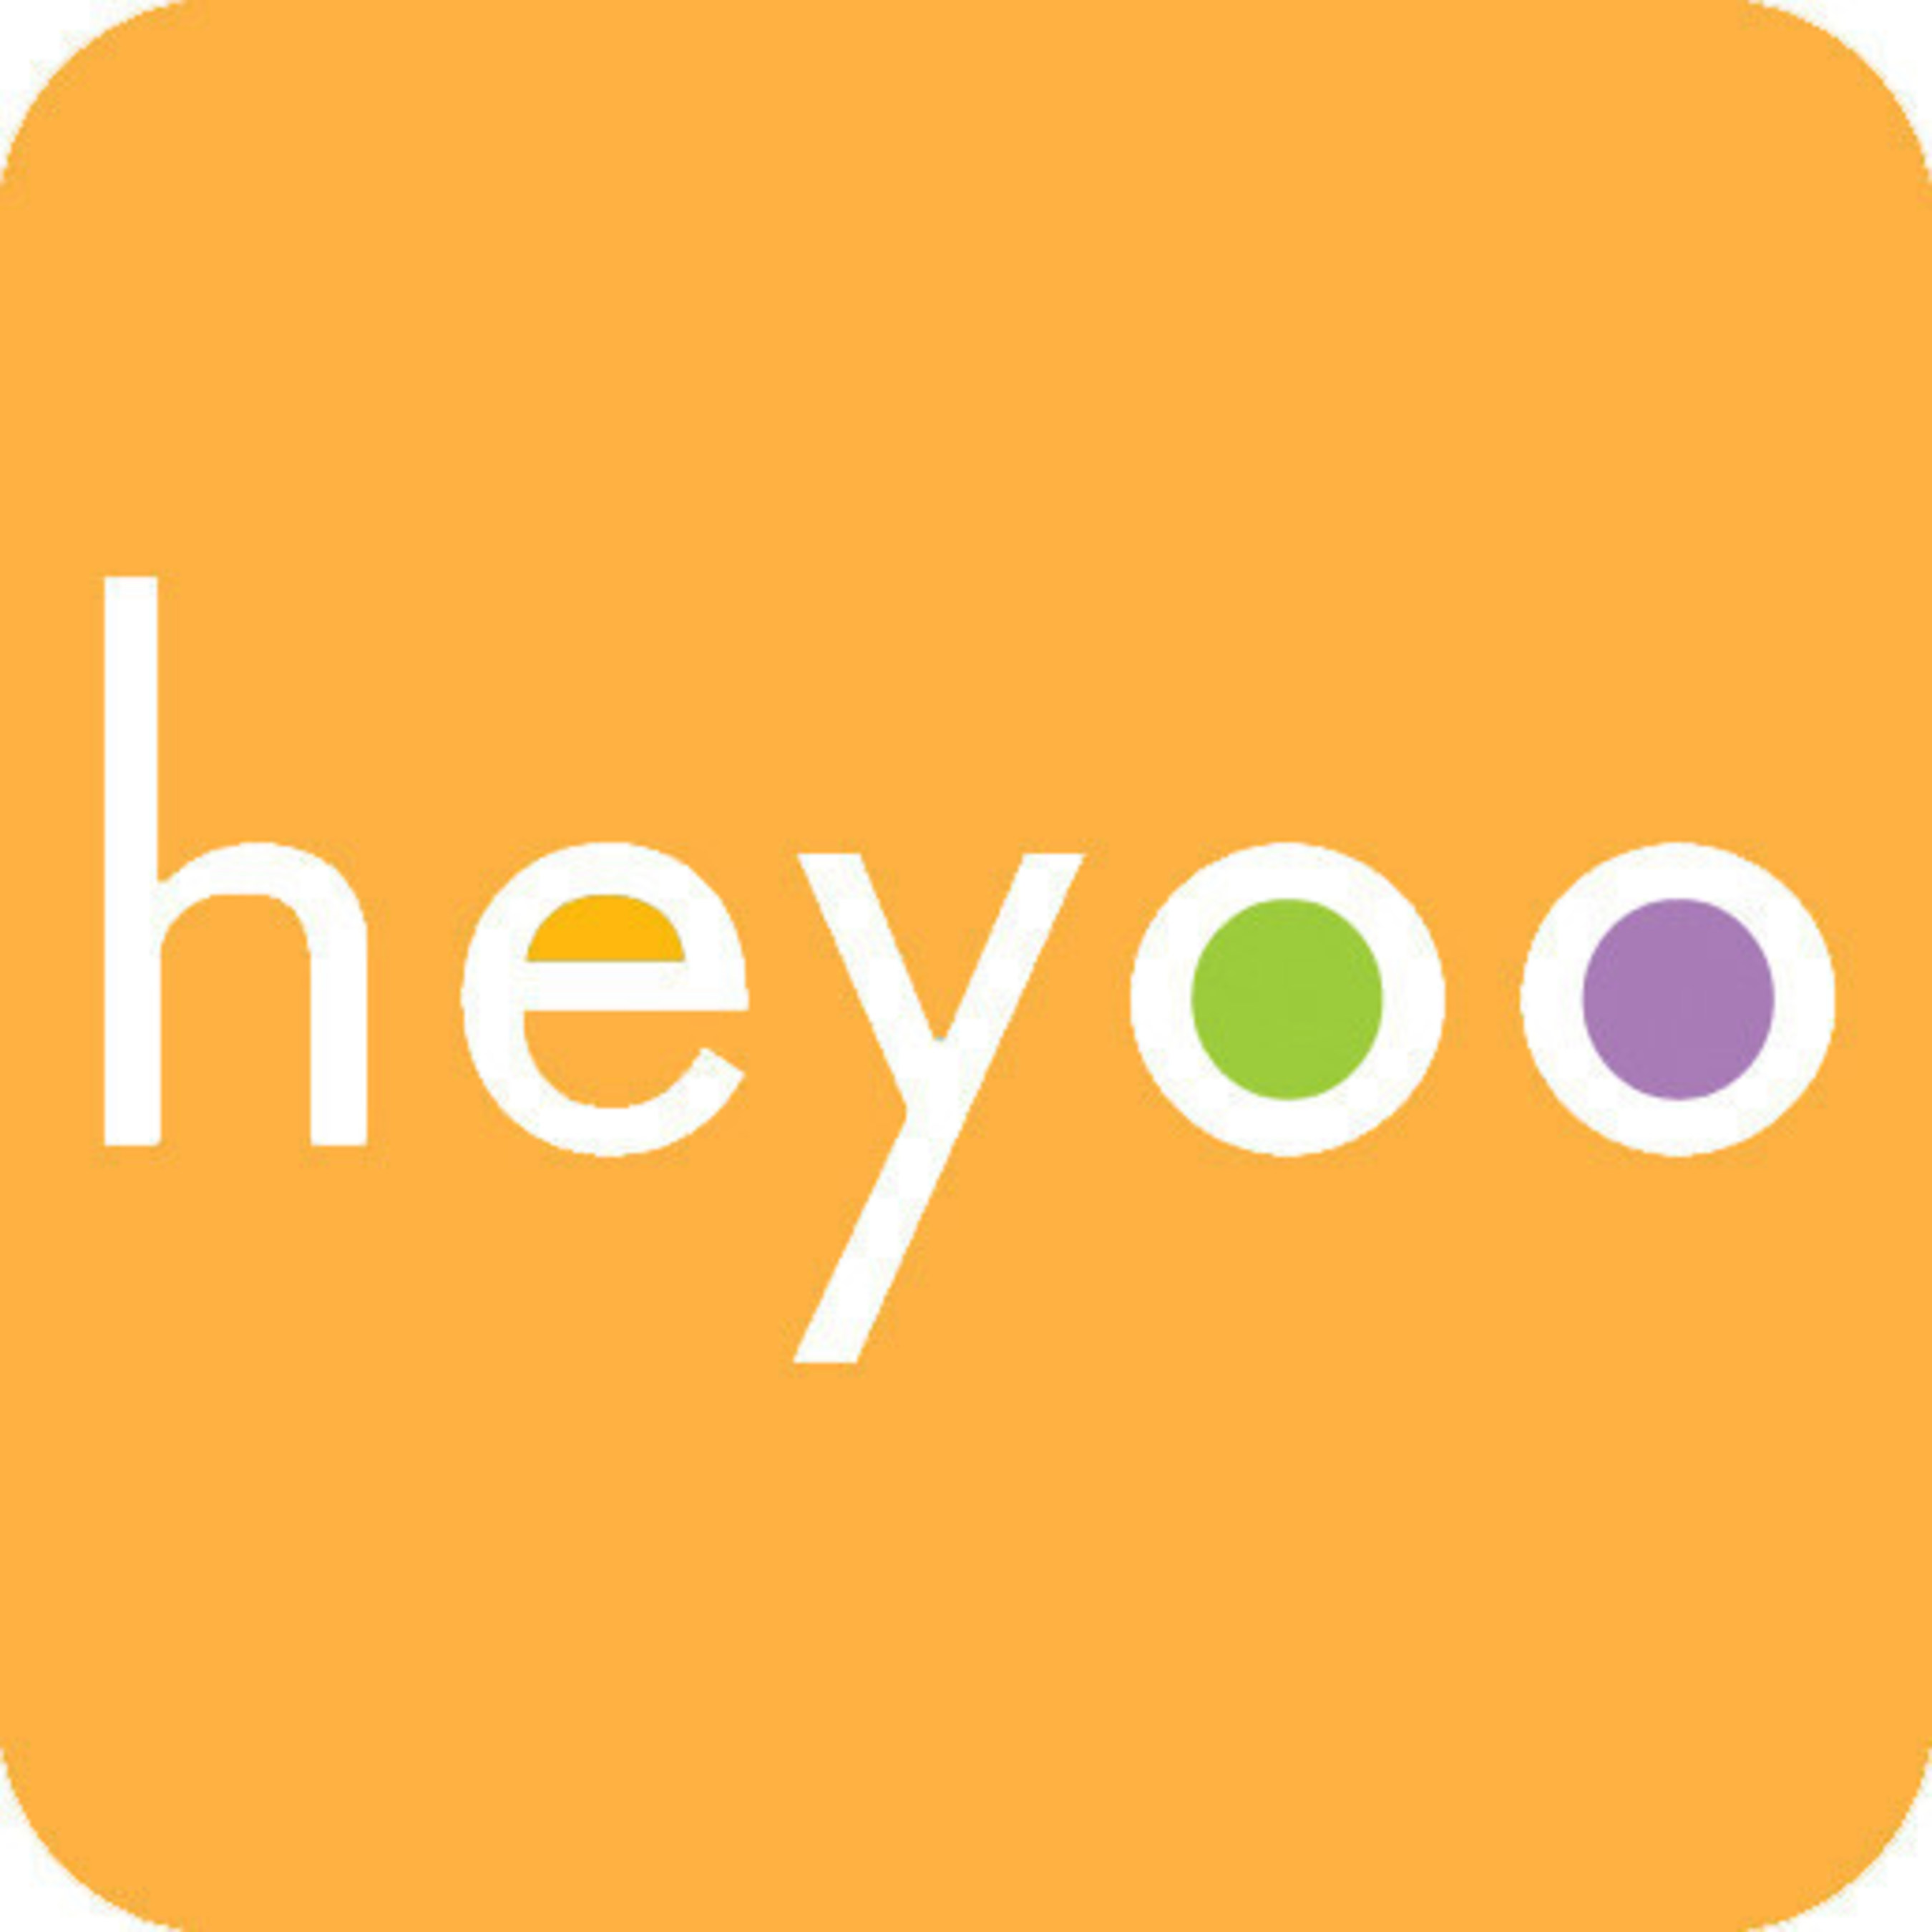 Heyoo™ - Revolutionizing the Concept of Calendaring